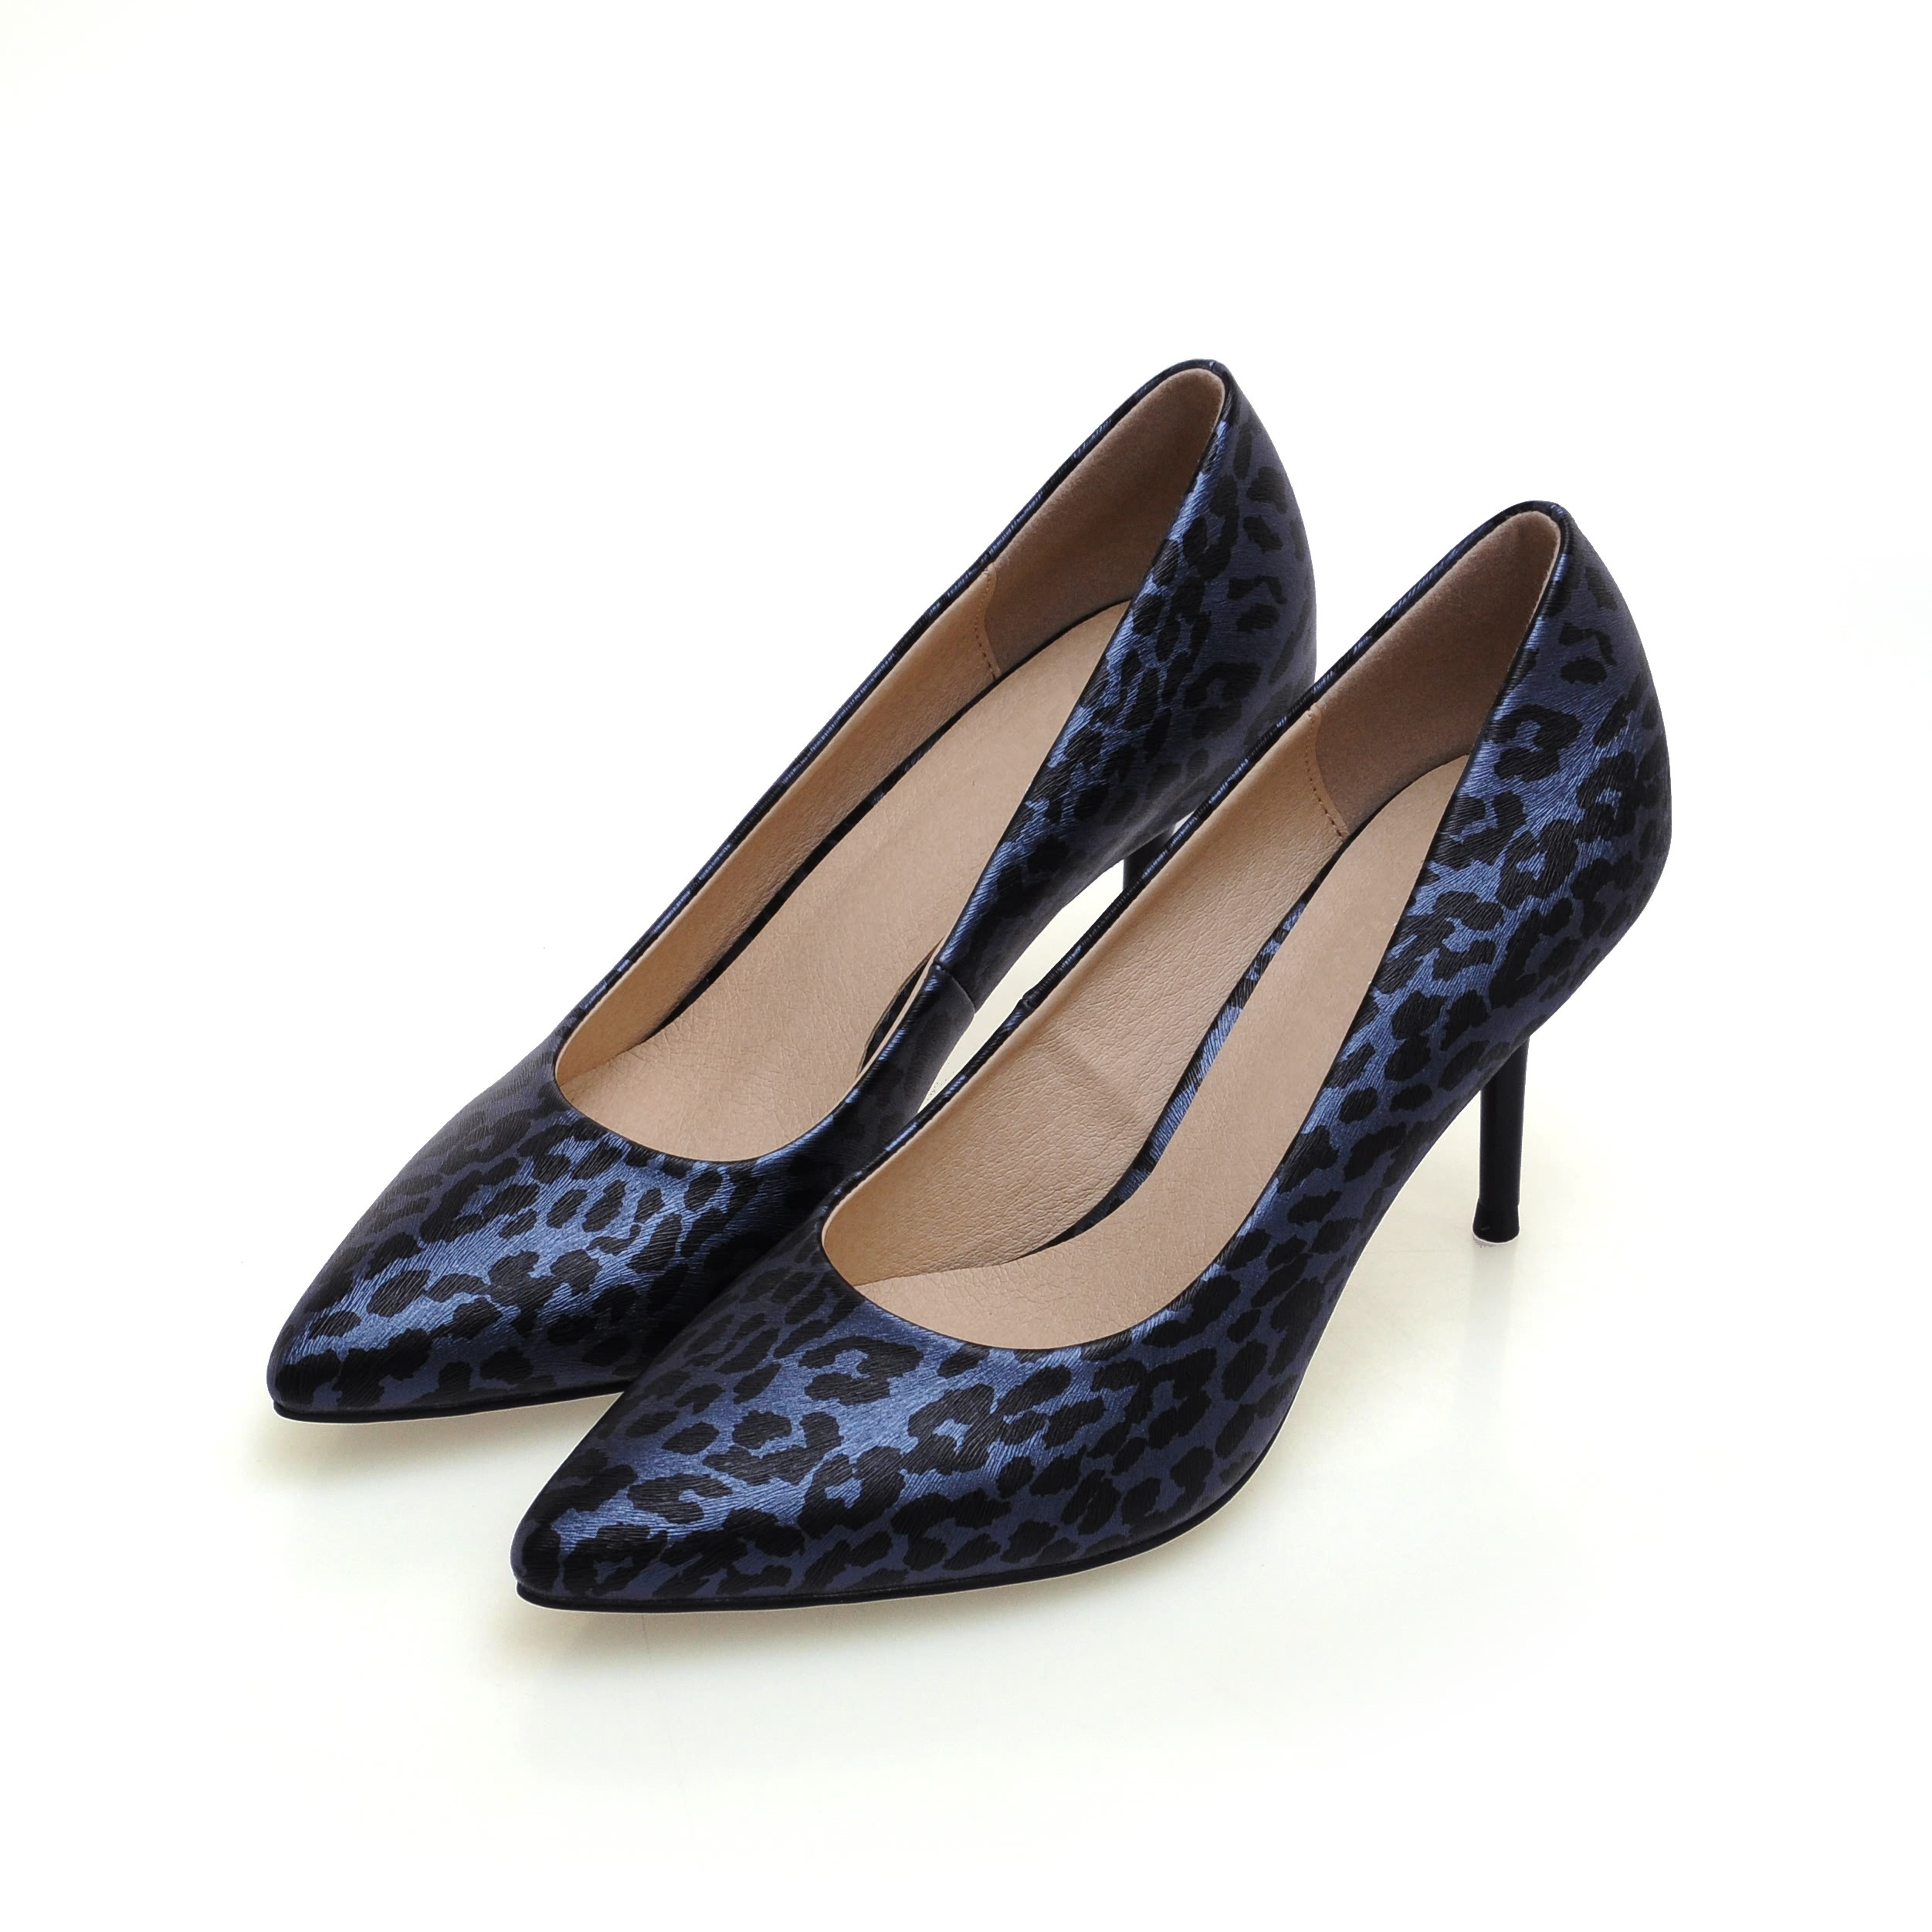 Womens Shoes 2017 New Fashion Genuine Leather Pumps Plus Size 34-41 Ladies Pointed Toe Leopard Print High Heels Shoes SMYBK-72 new 2017 spring summer women shoes pointed toe high quality brand fashion womens flats ladies plus size 41 sweet flock t179